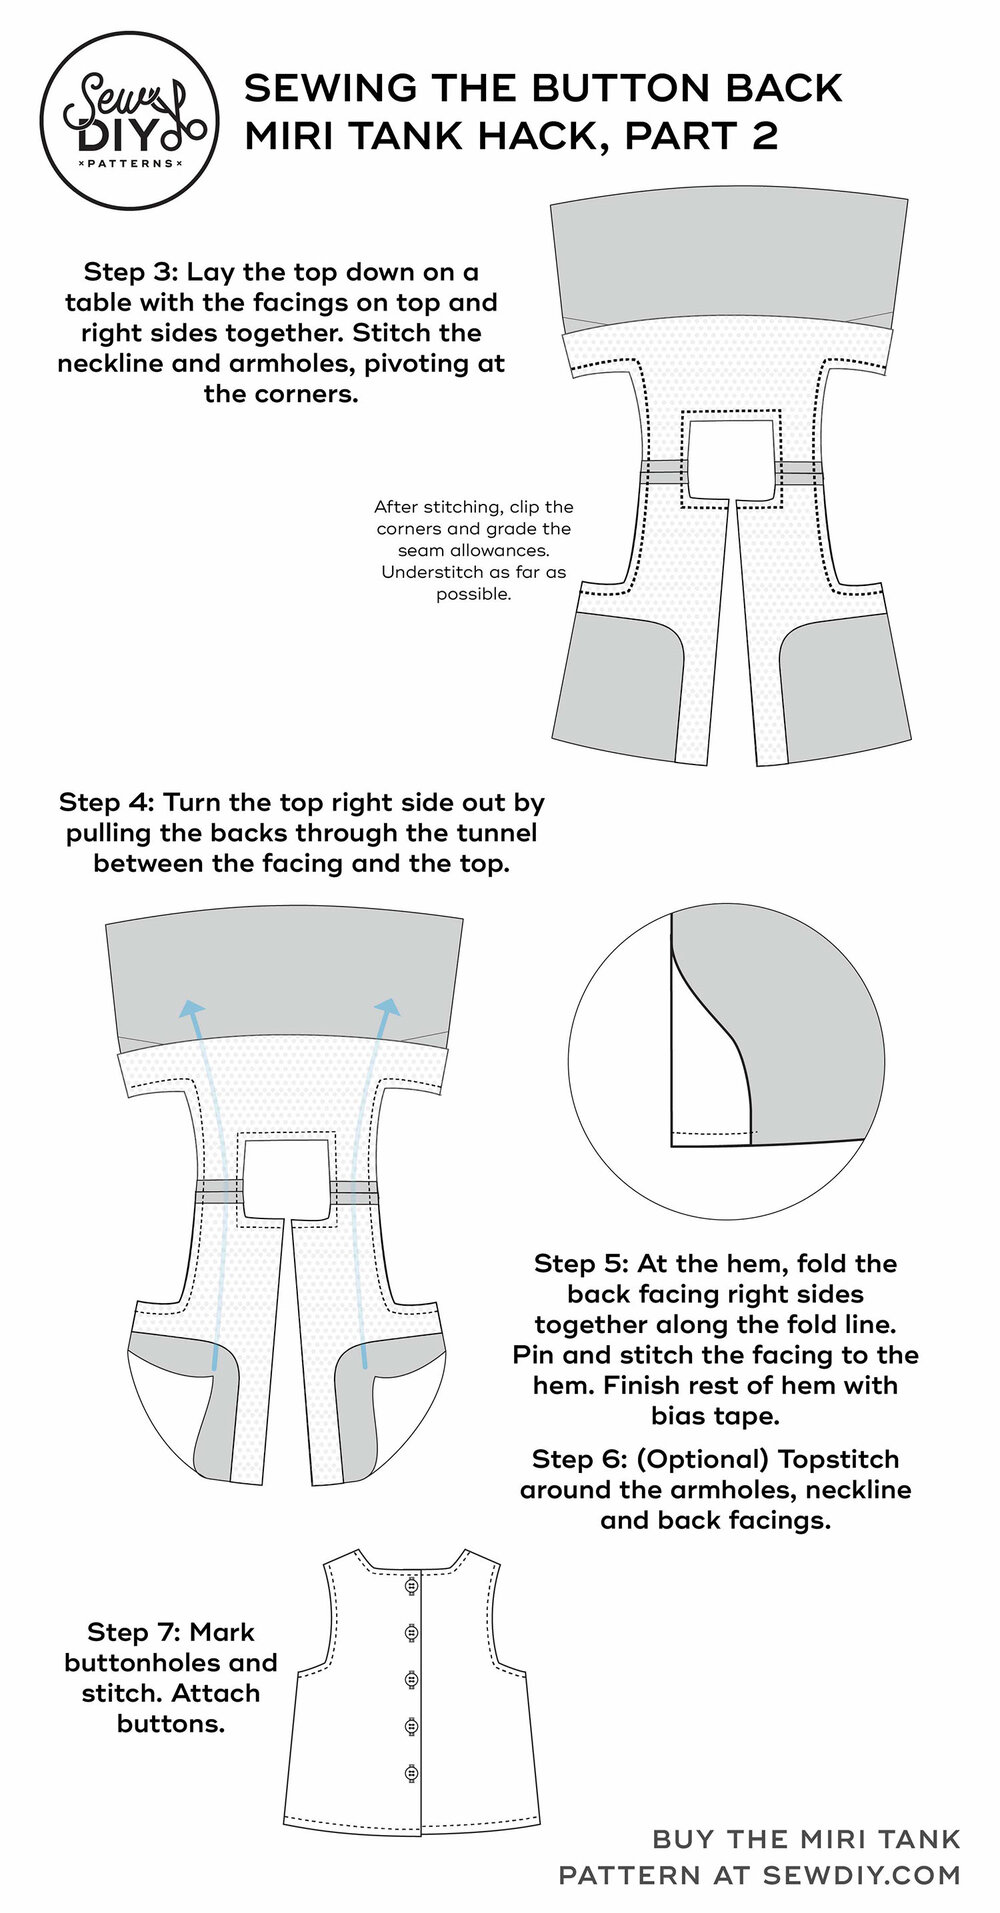 How to sew a button back Miri Tank Top – Sewing pattern hack by Sew DIY